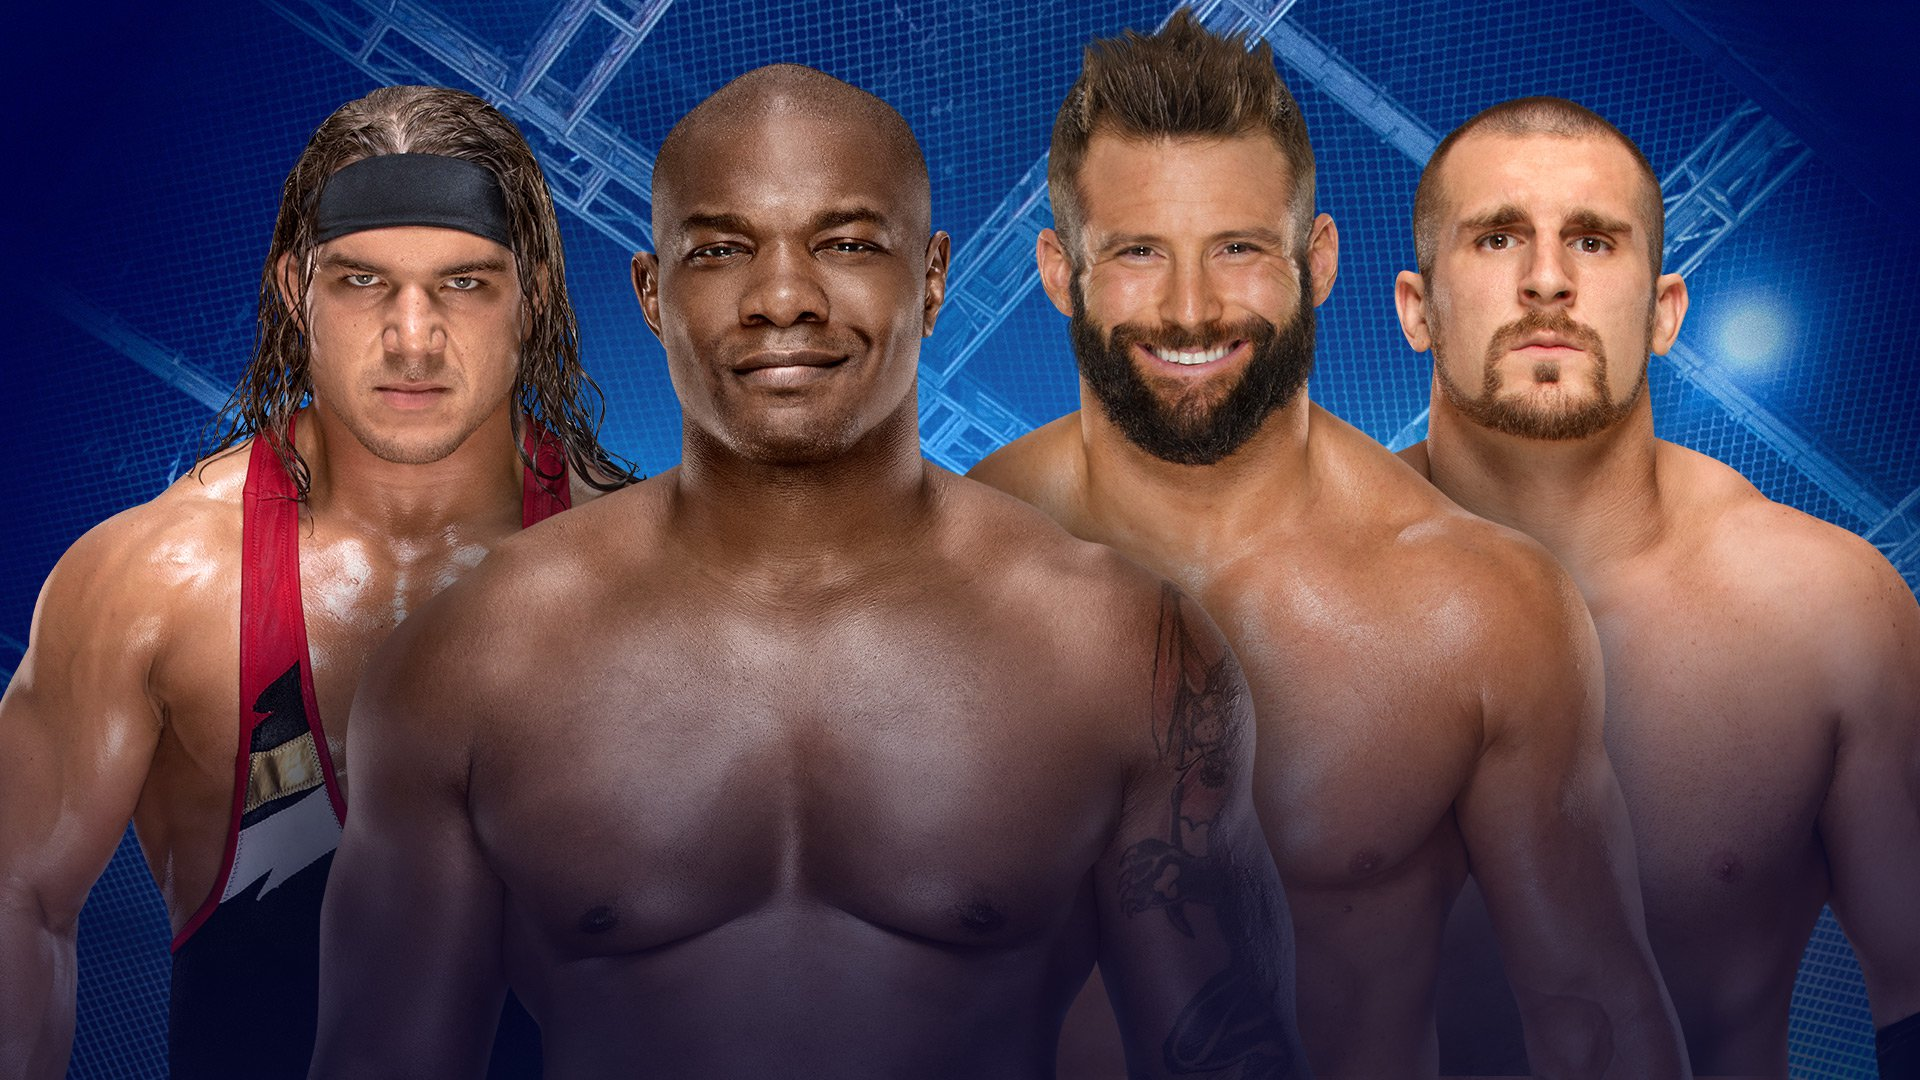 WWE Hell in a Cell 2017: Chad Gable & Shelton Benjamin vs. The Hype Bros